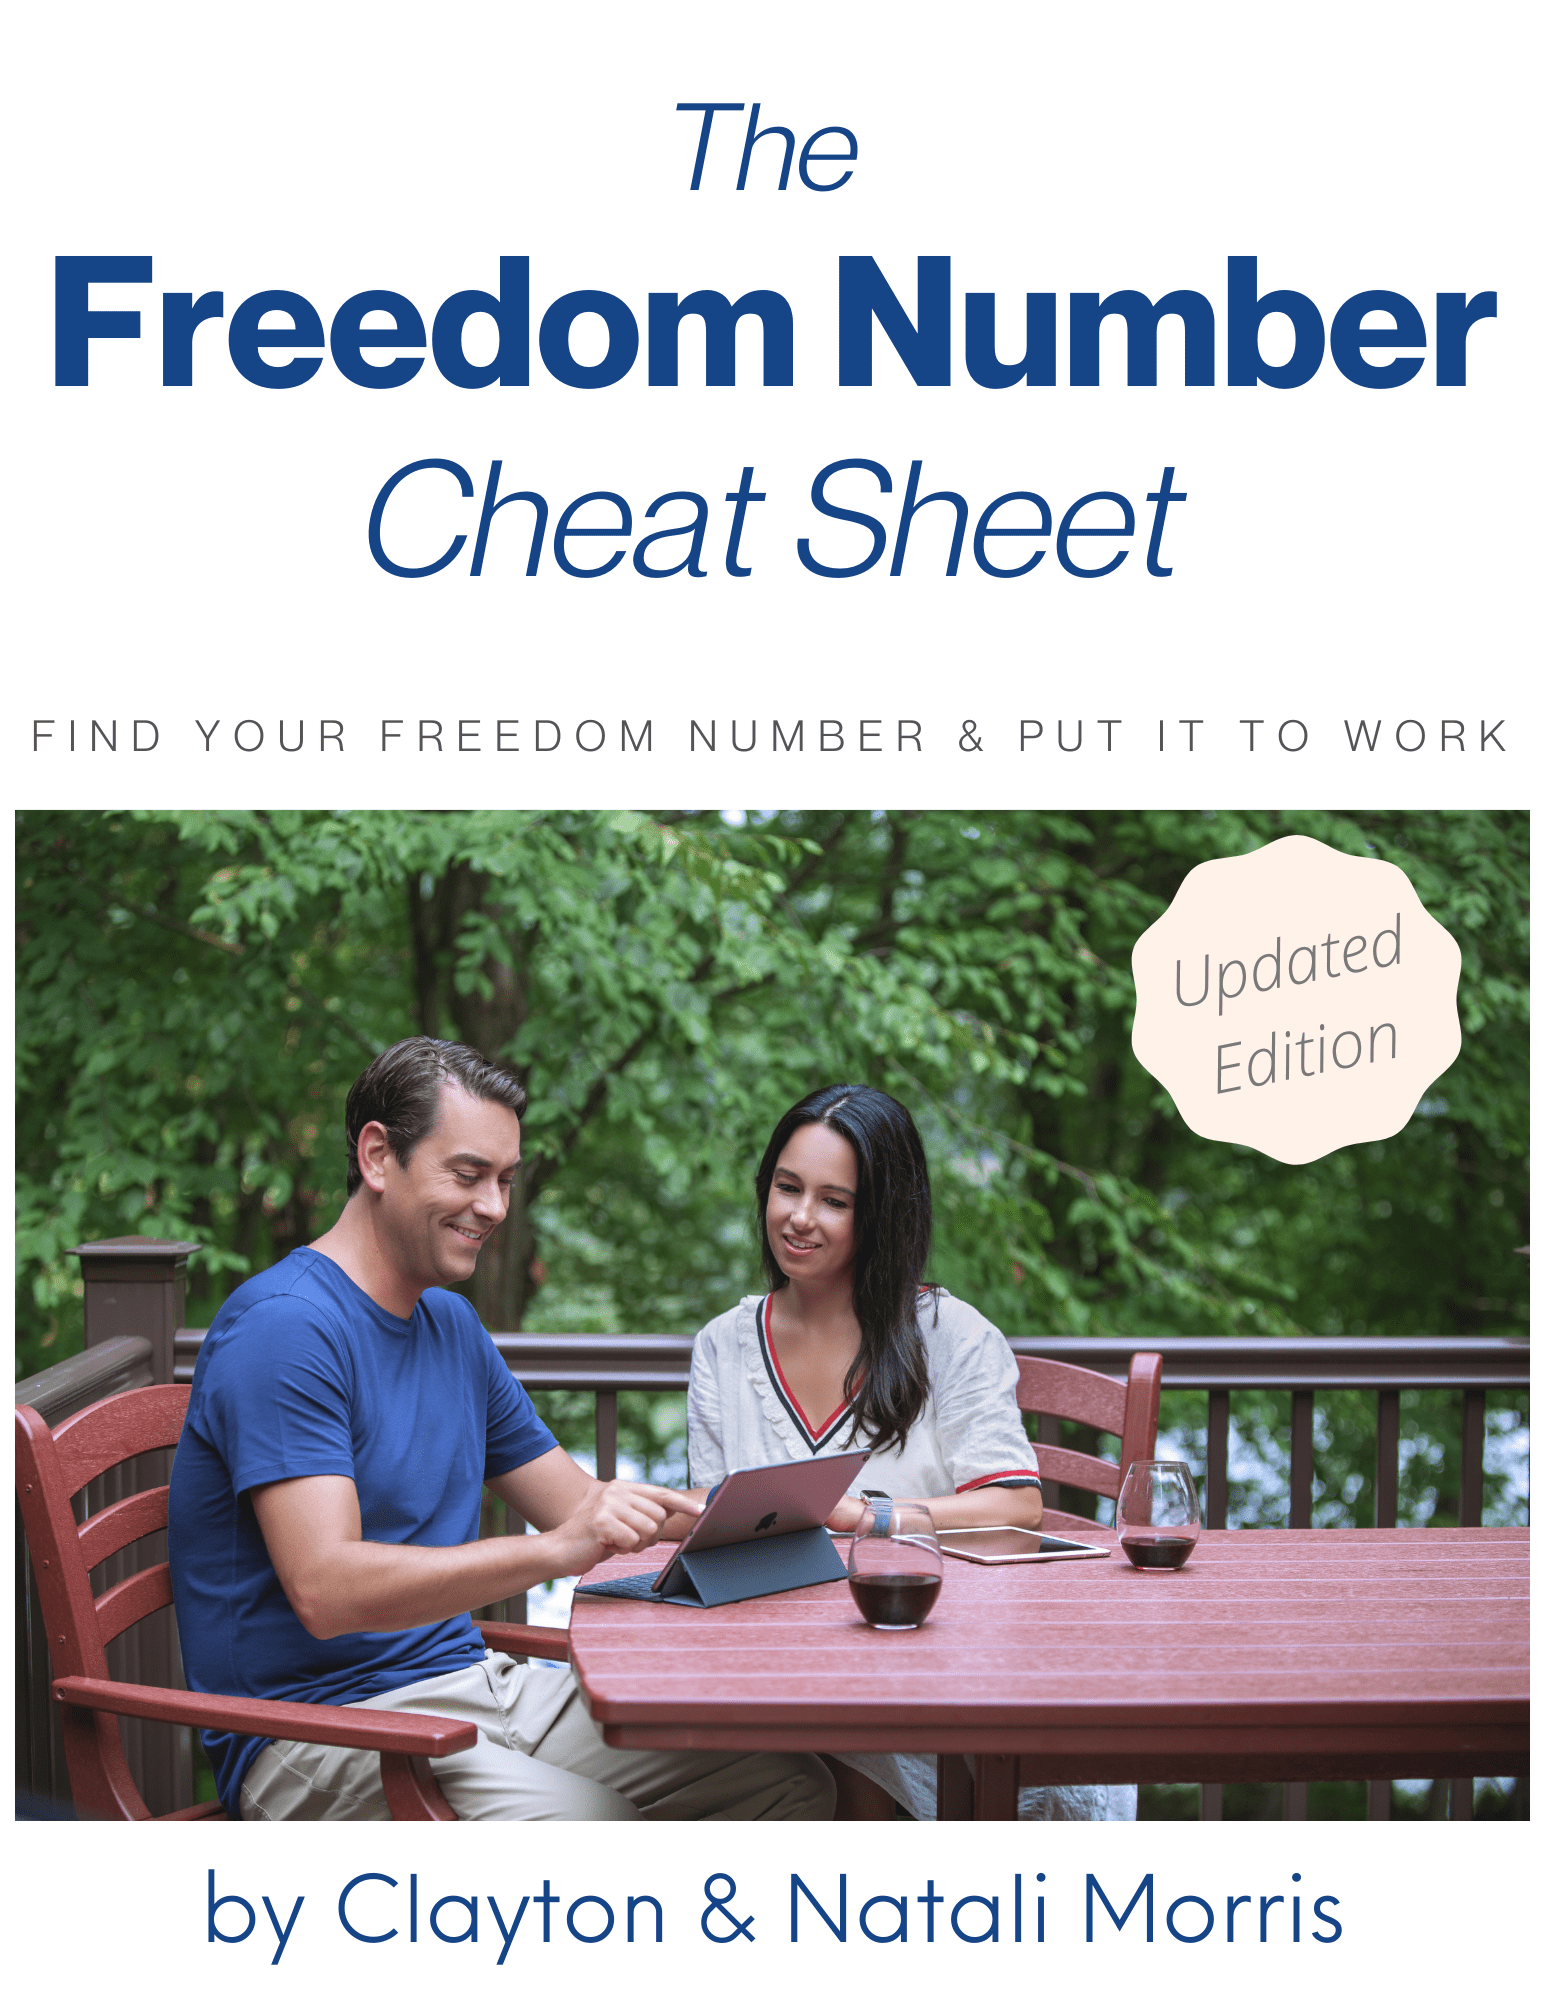 Freedom Number Cheat Sheet updated image